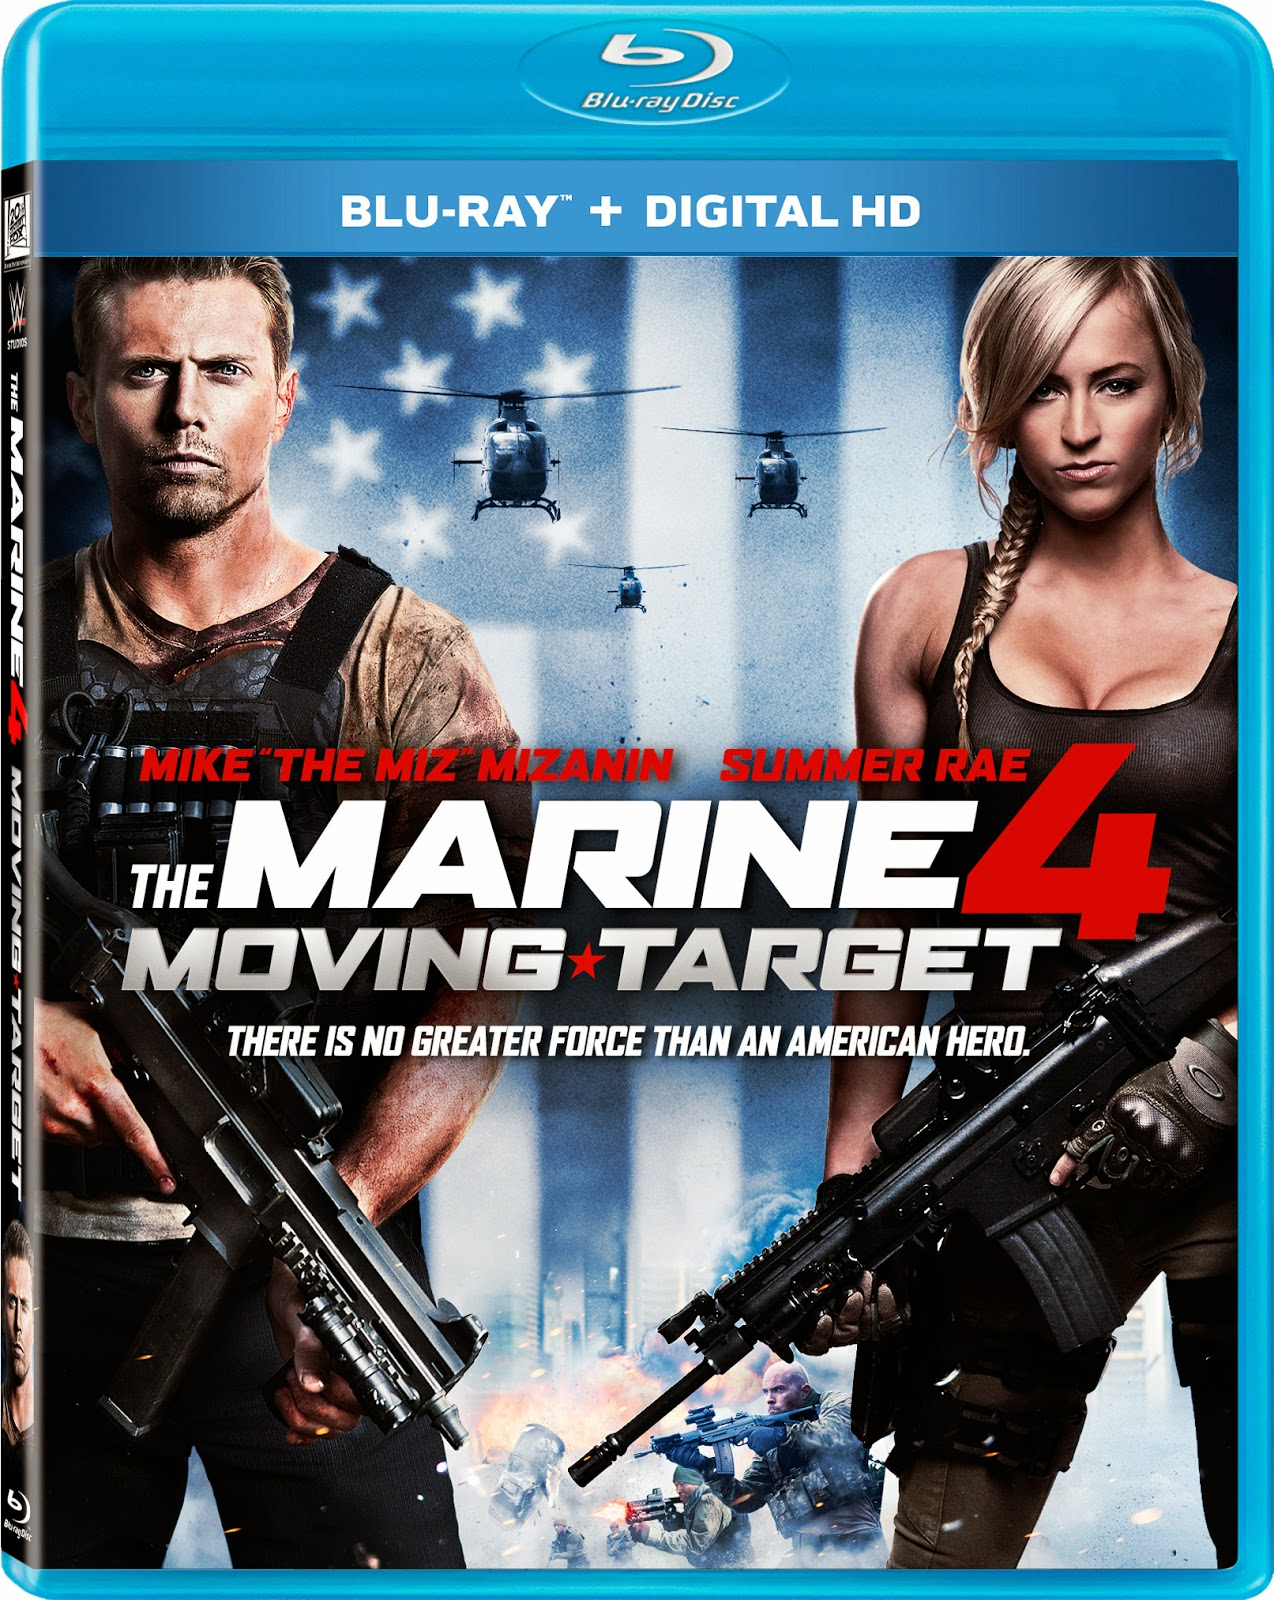 The Marine 4: Moving Targets Blu-ray Giveaway